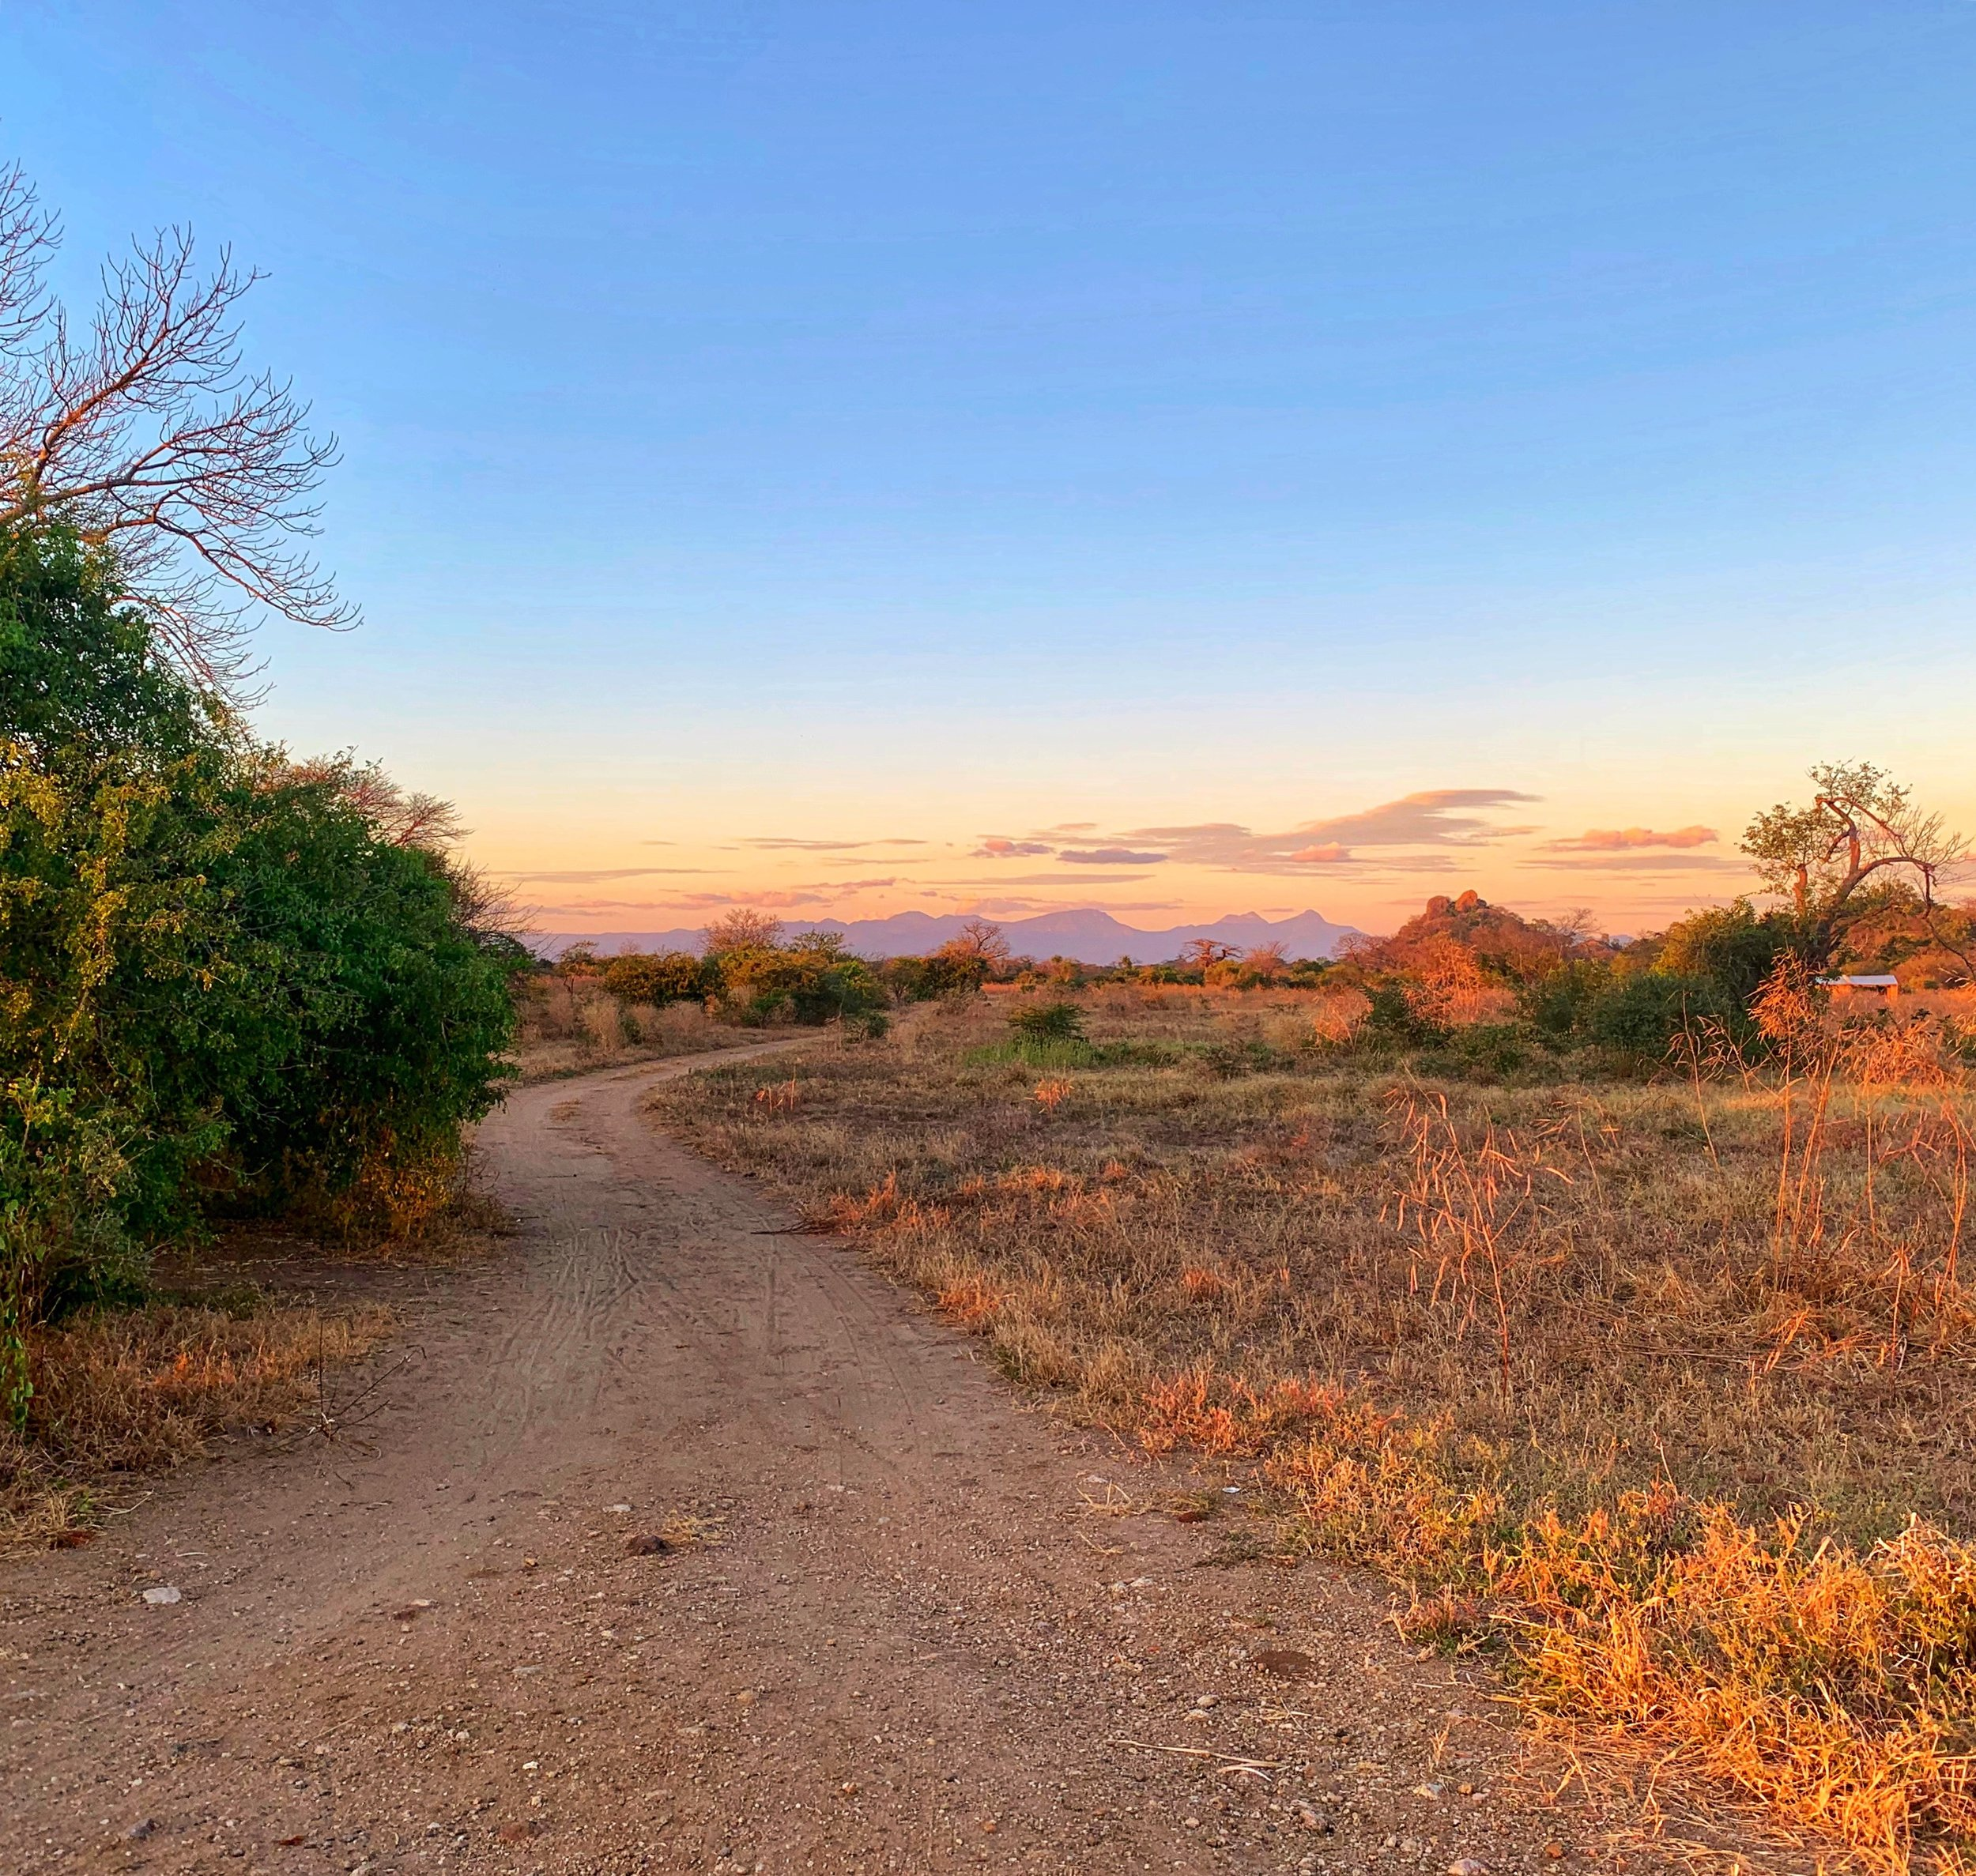 Sunrise at the trailhead for the Malawi course through the breathtaking African countryside.  Photo by Bethany Boll